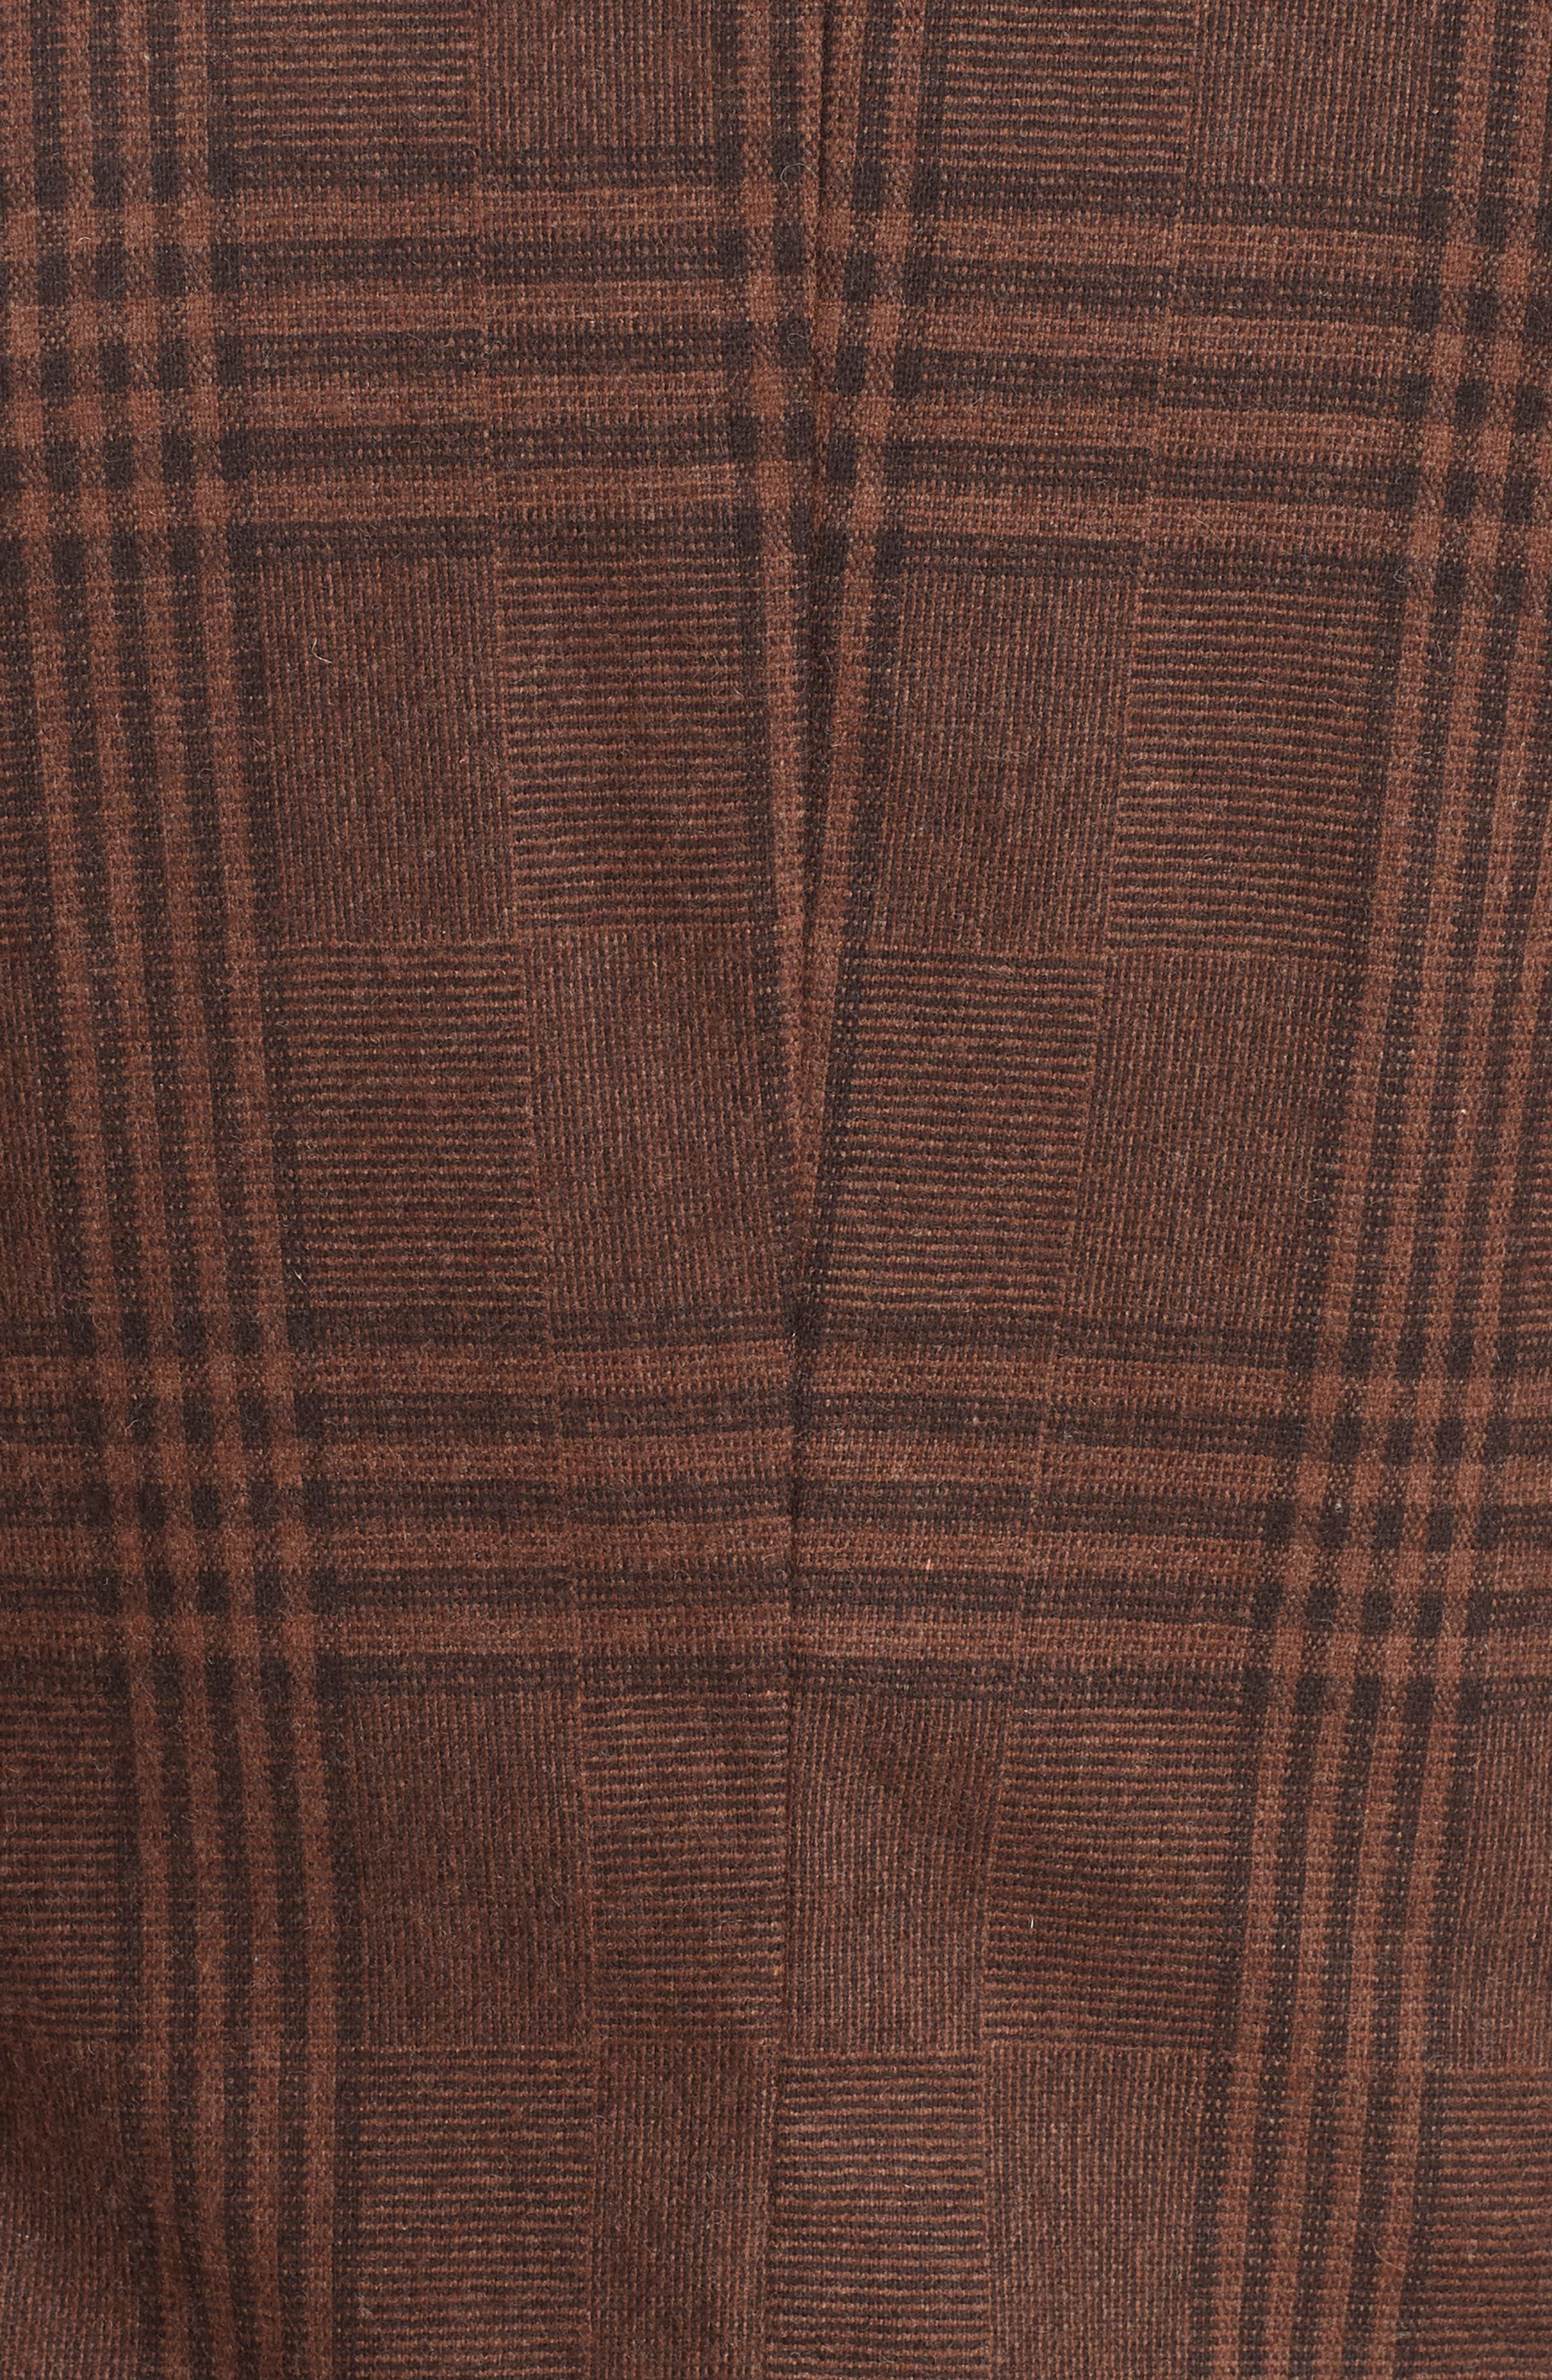 Trim Fit Plaid Stretch Wool Blend Sport Coat,                             Alternate thumbnail 6, color,                             BROWN